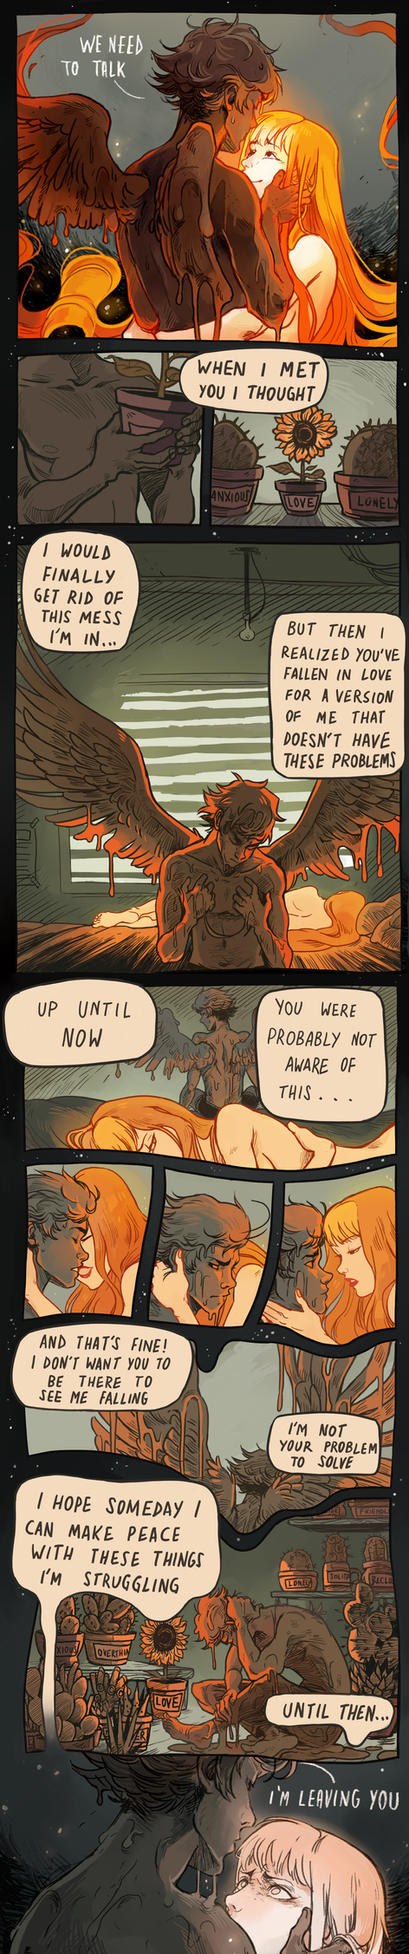 The lament of Icarus by Picolo-kun